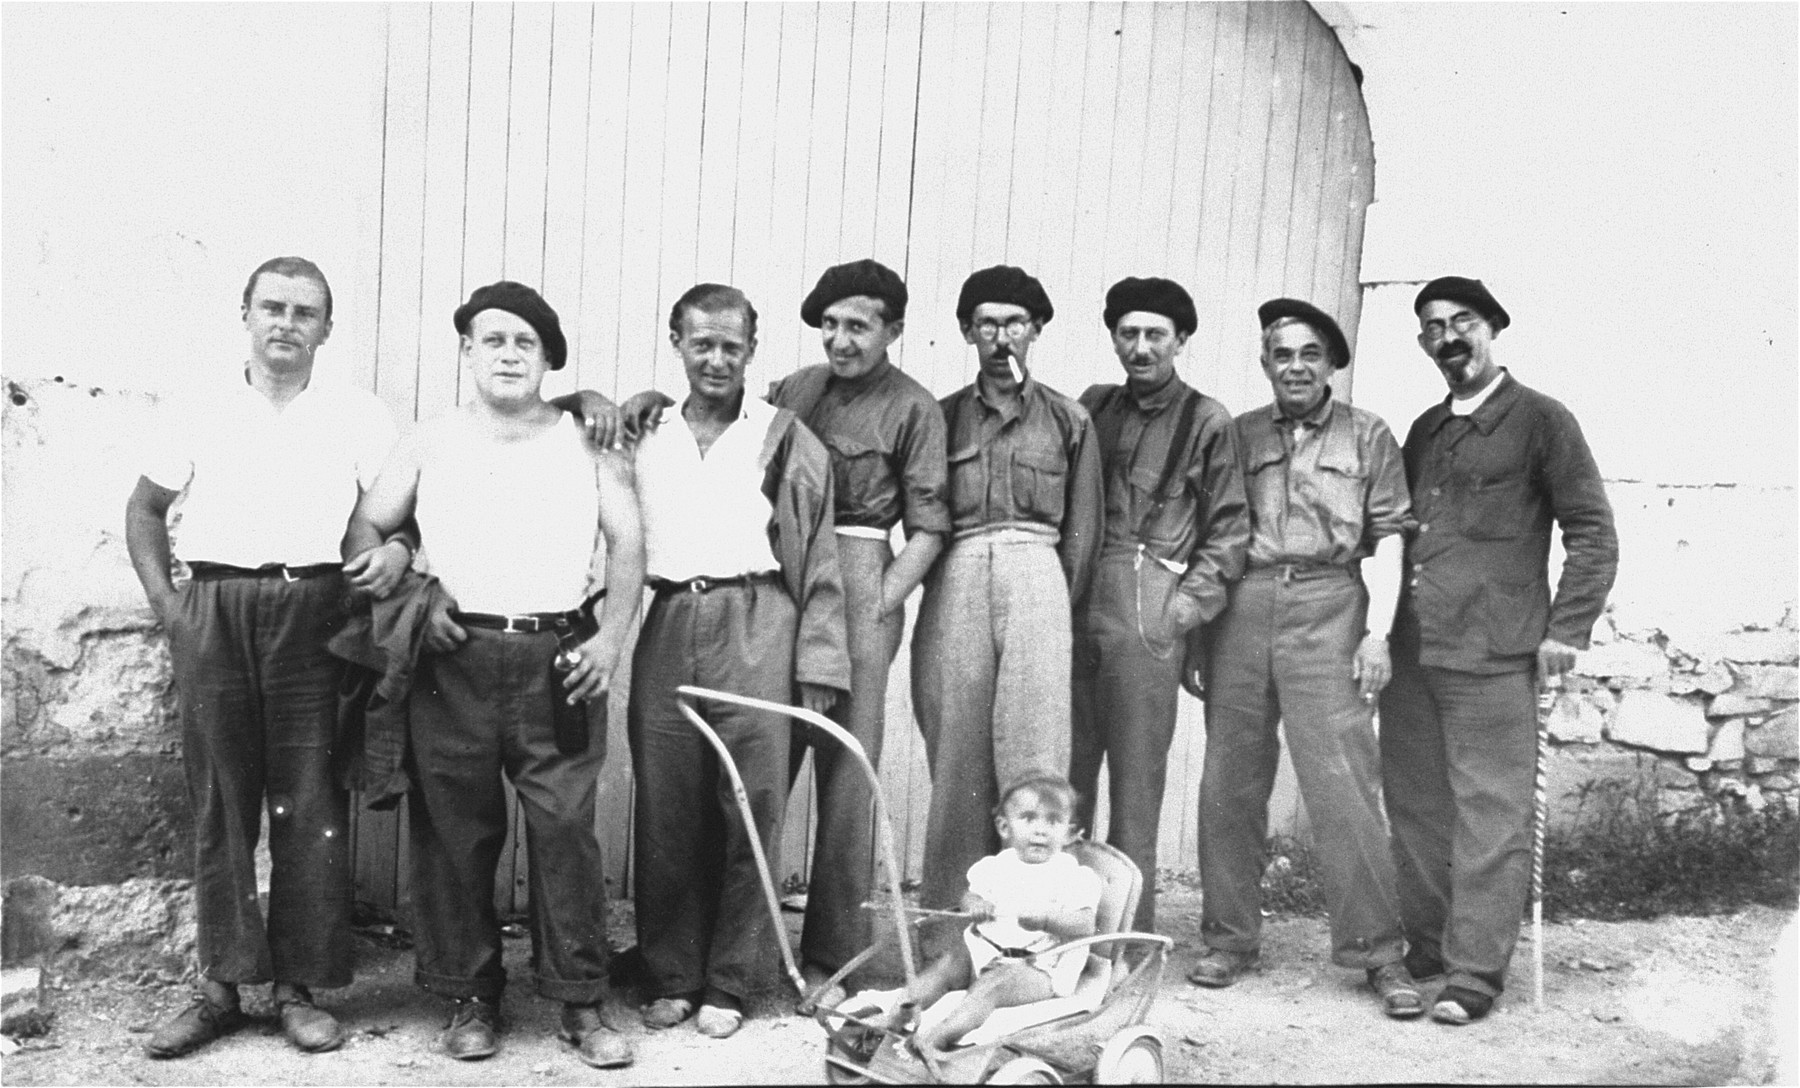 A group of Jewish refugees, conscripts in the Prestataires, a branch of the French military reserved for foreign nationals, in Langlade labor camp.  The man fourth from right is Hugo Rappaport.